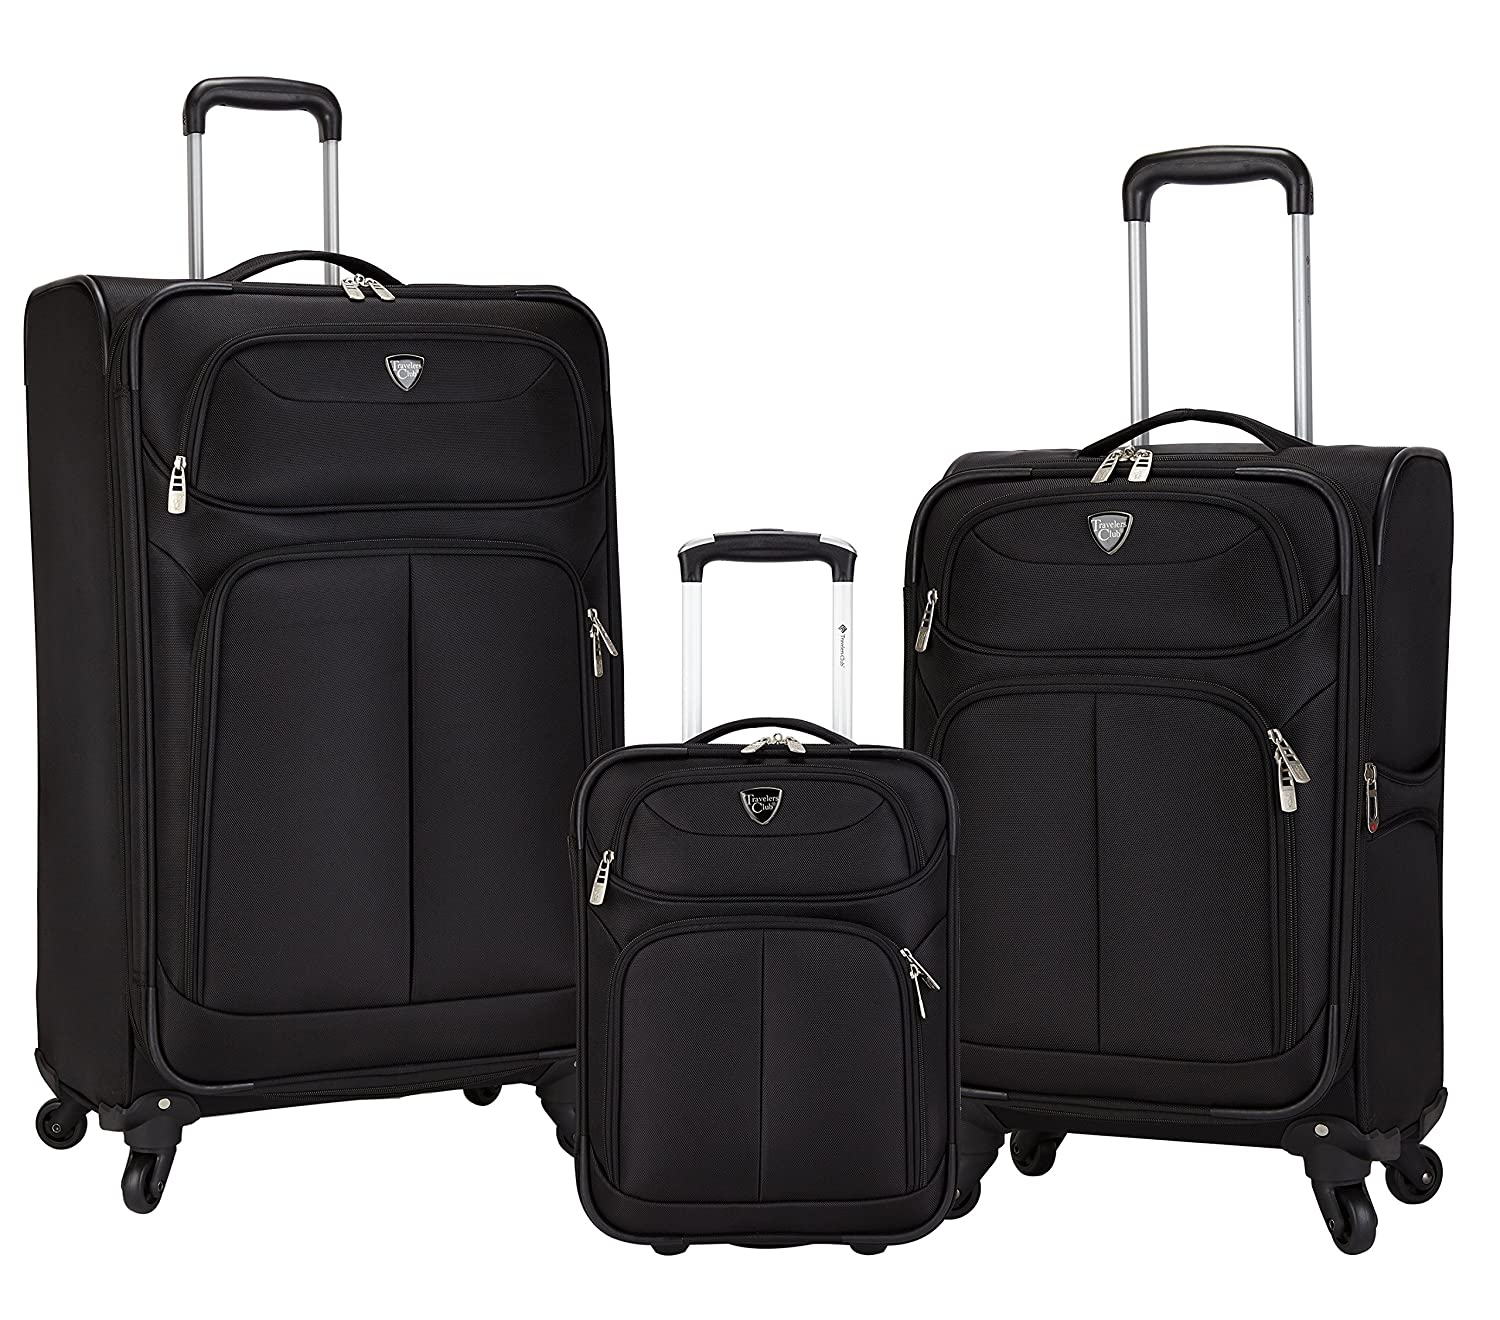 Travelers Club 3 PieceHartford Collection Constructed with Top Durable Fabric Features 28 Spinner Luggage, 20 Spinner Carry-On, and 17 Underseater, Black Color Option 20 Spinner Carry-On and 17 Underseater Travelers Club Luggage TCL-88403-001